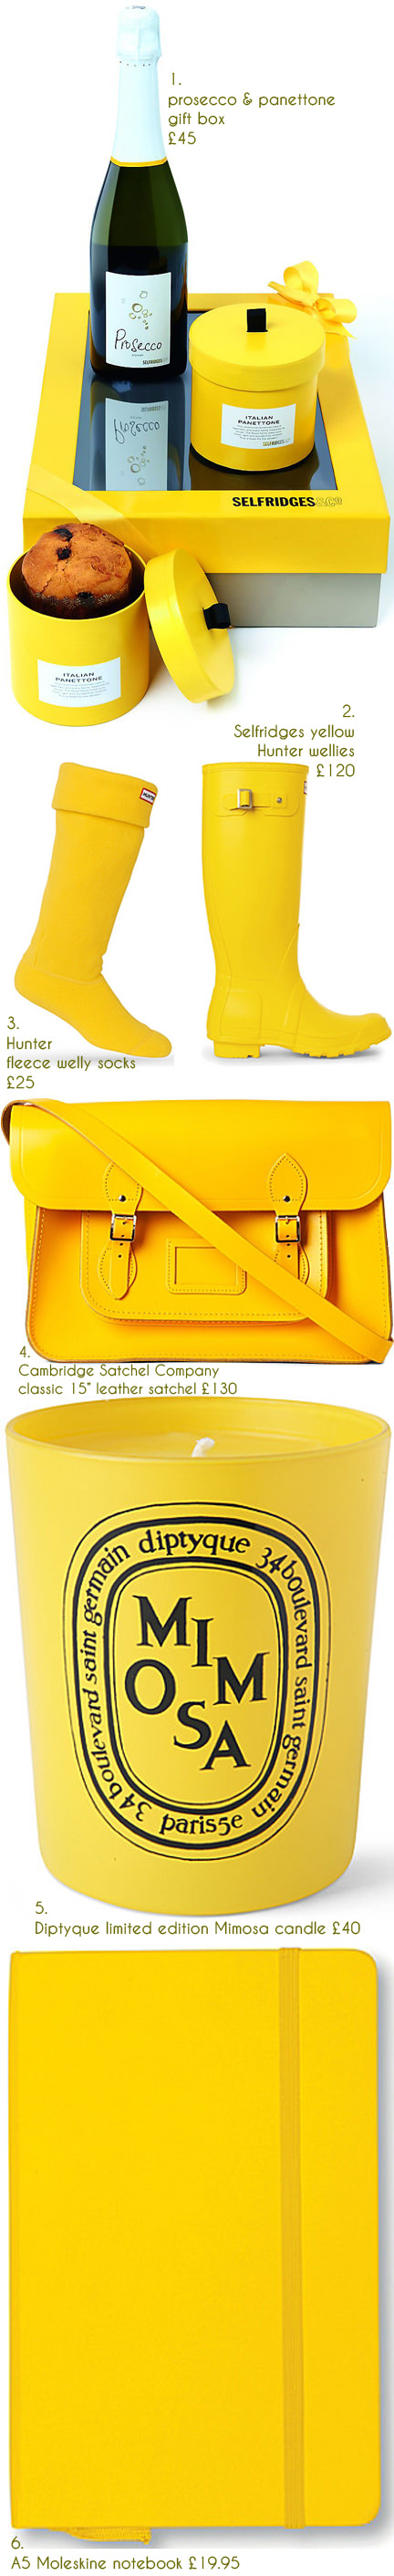 selection of yellow gift items available from Selfridges